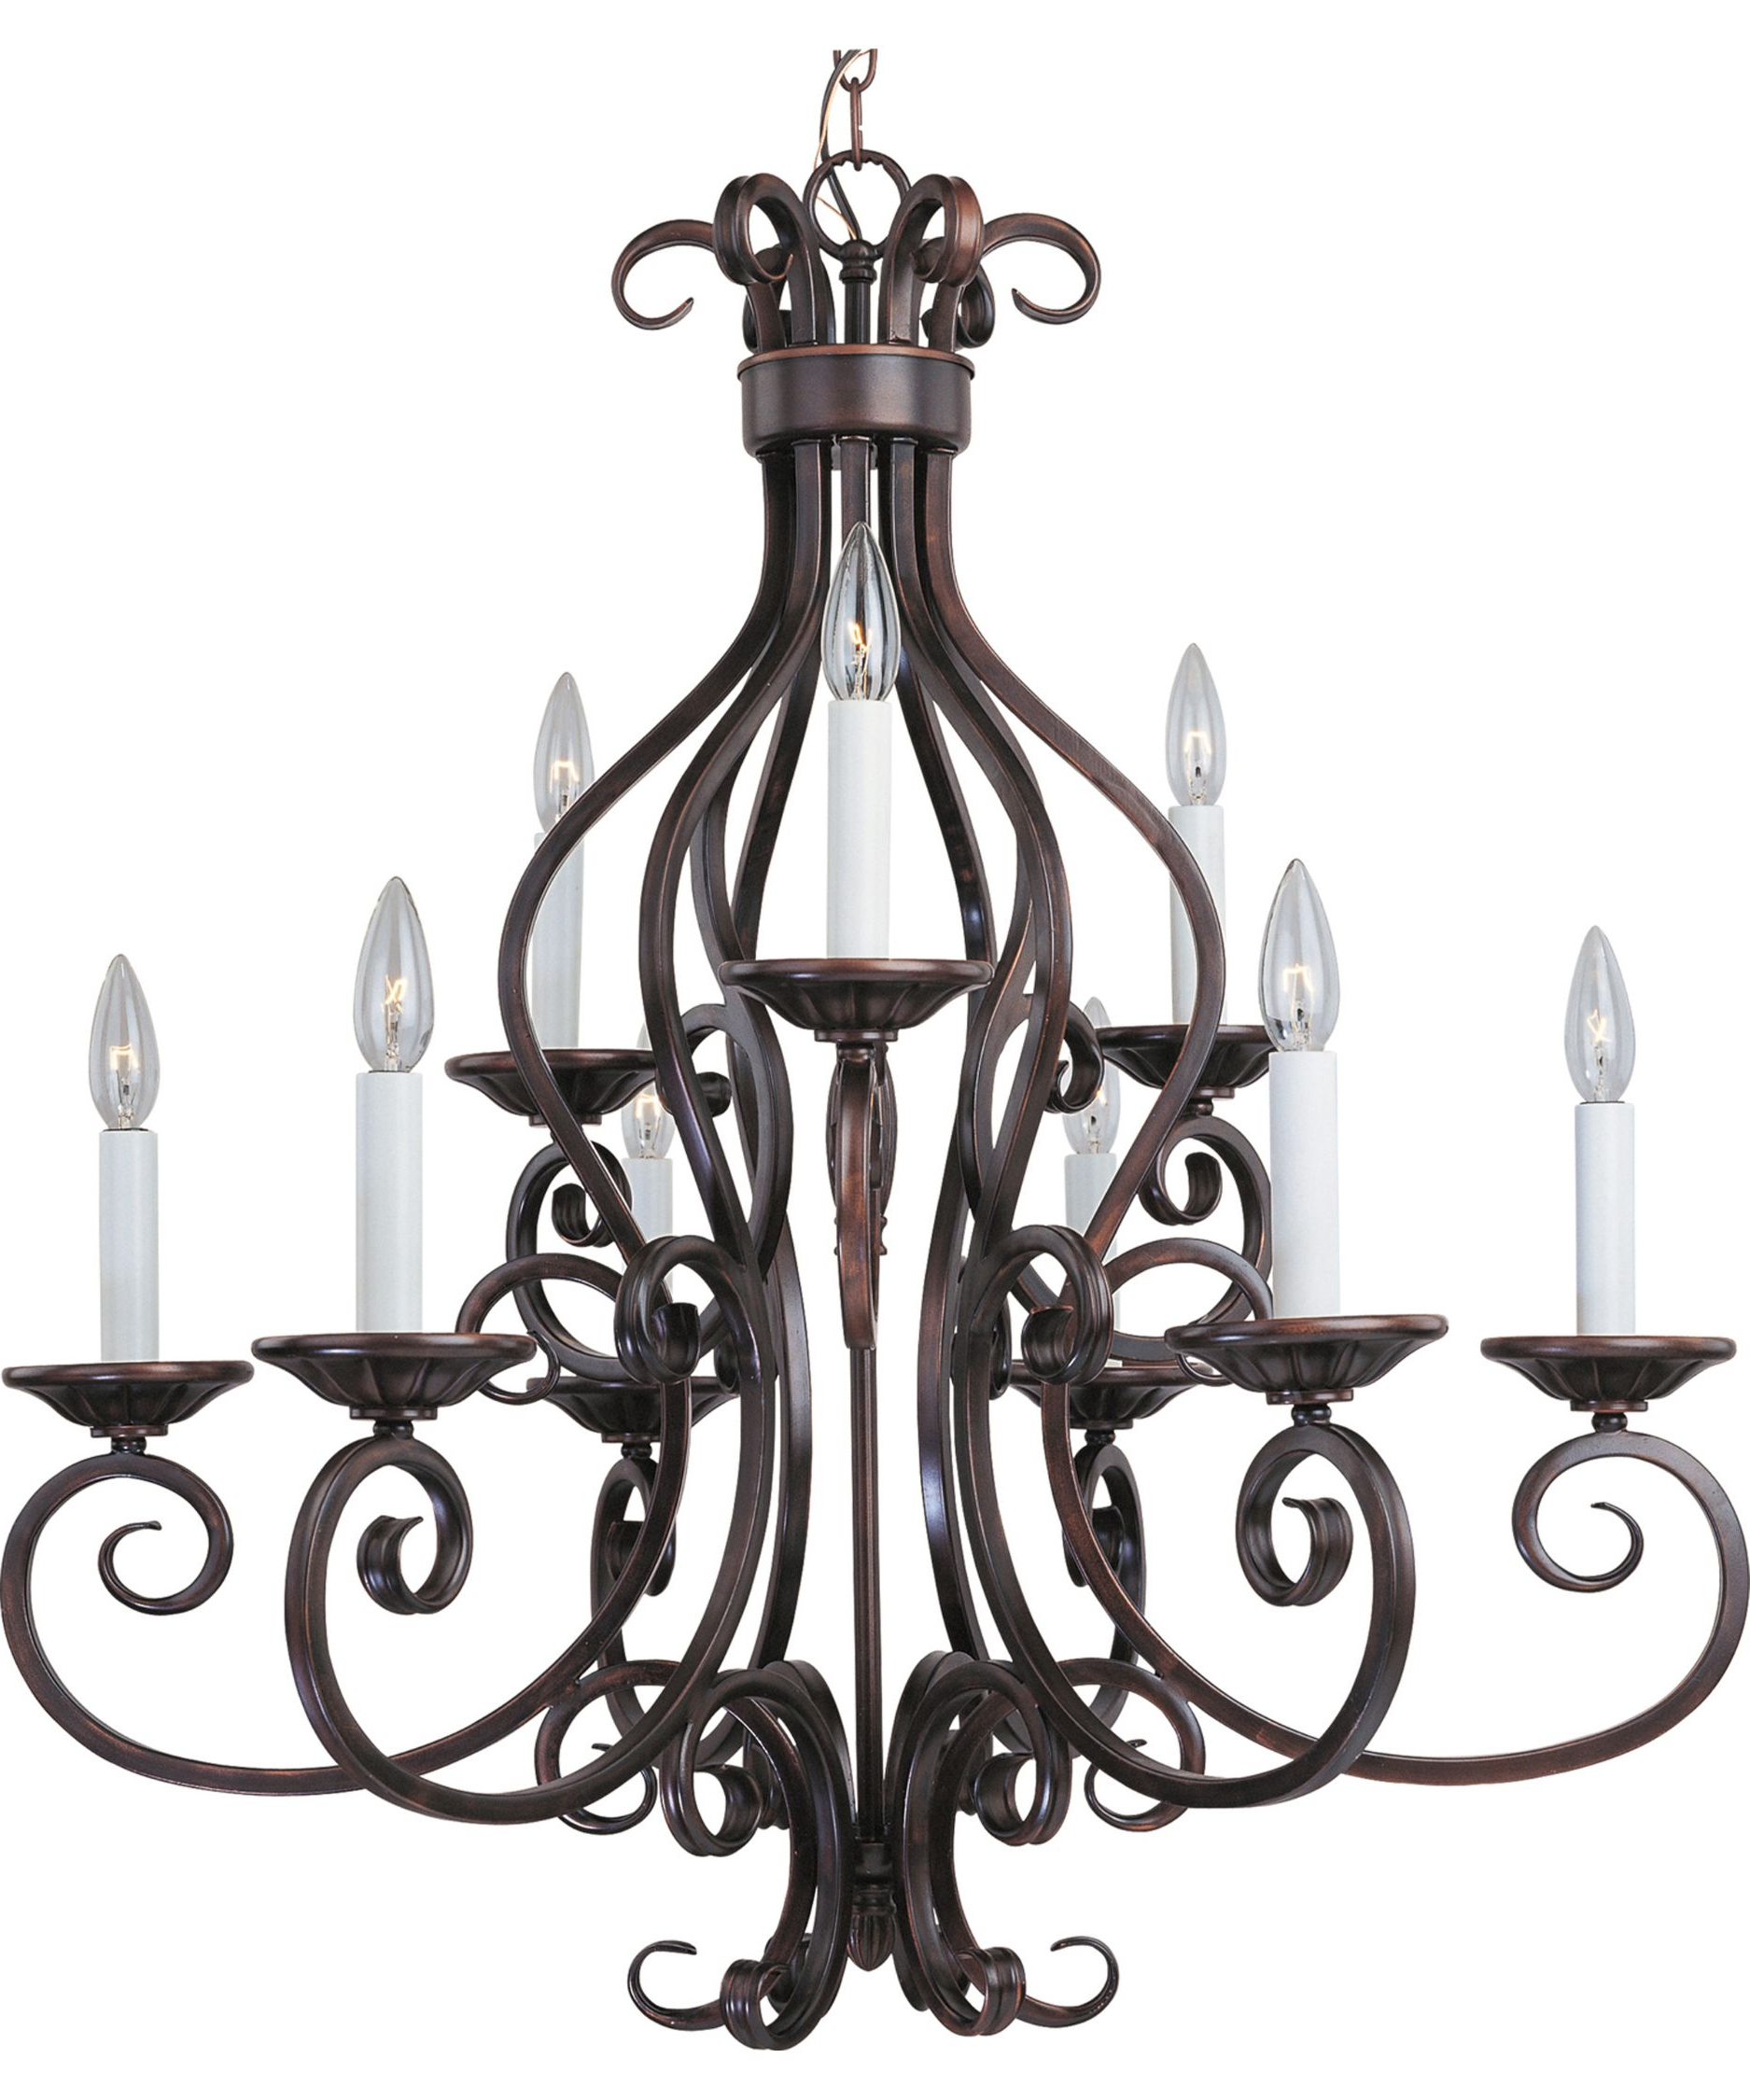 2019 Manor 29 Inch 9 Light Chandeliermaxim Lighting With Gaines 9 Light Candle Style Chandeliers (View 2 of 20)